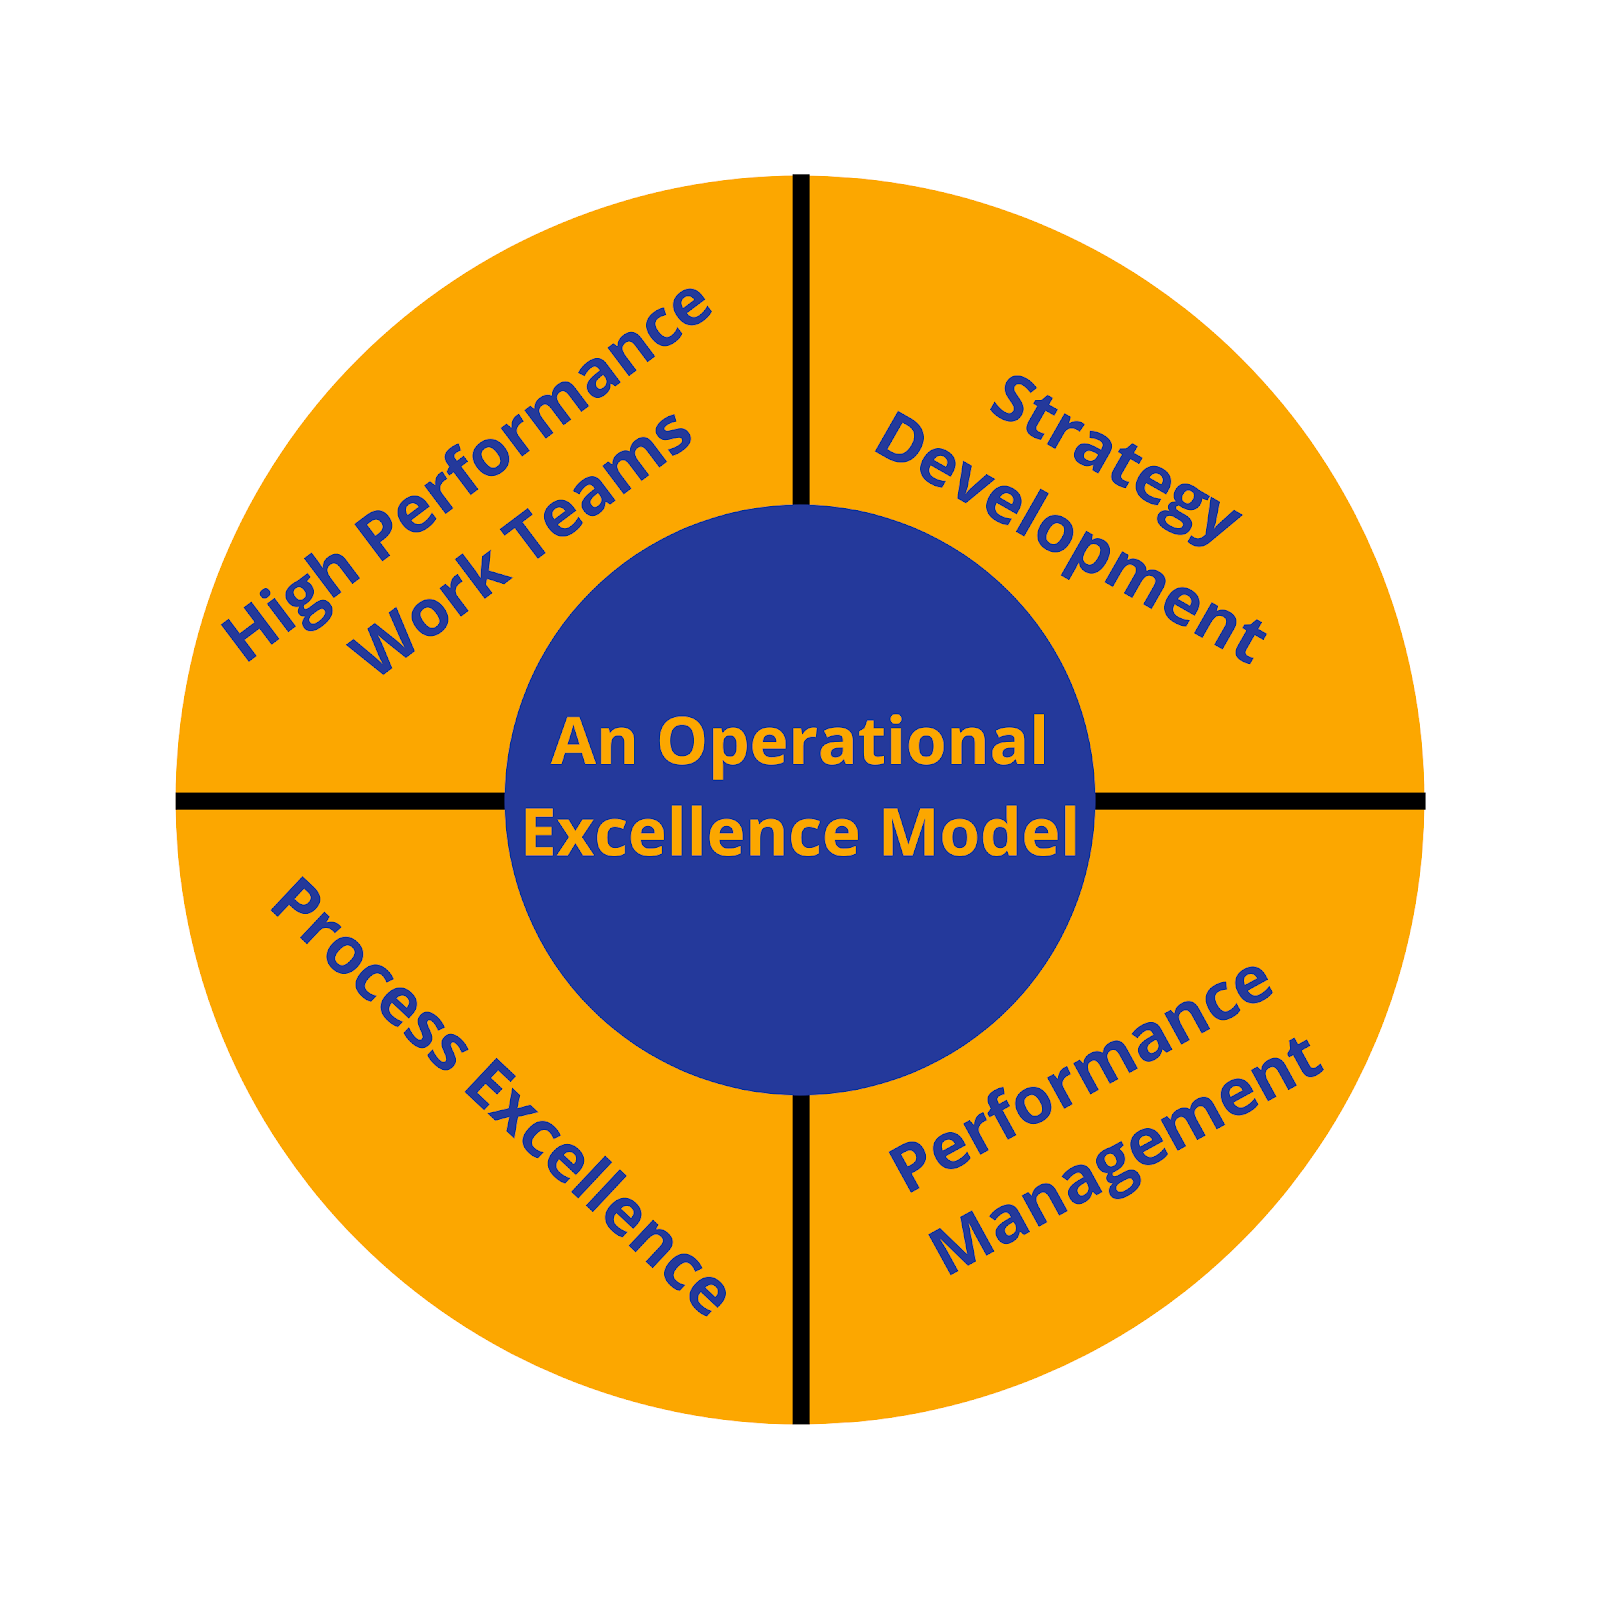 Strategic Operational Excellence Model